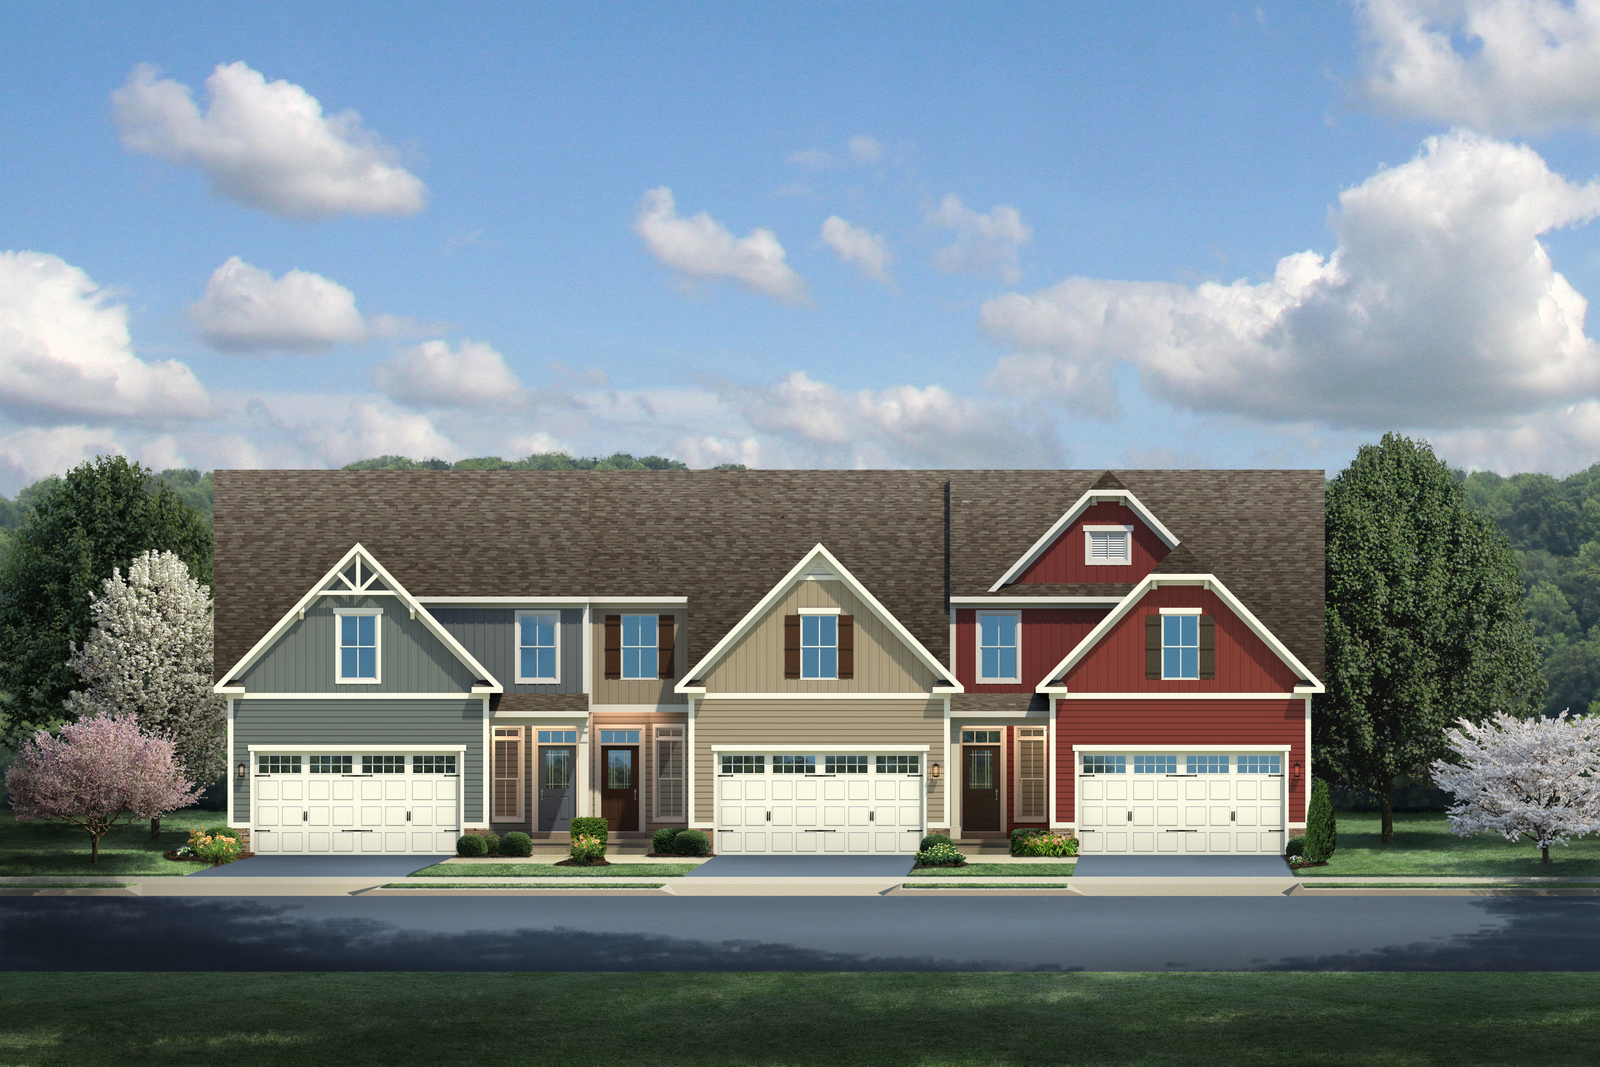 New Homes For Sale At Villas At Braden Townes In